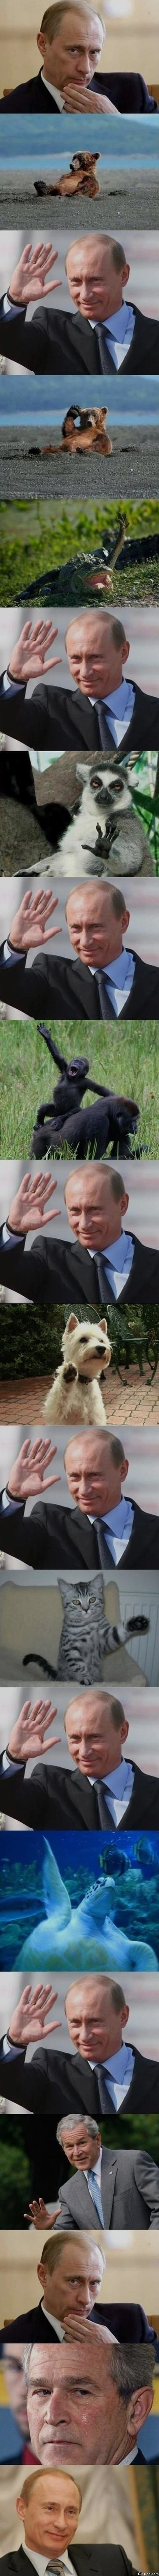 funny-pictures-putin-highfive